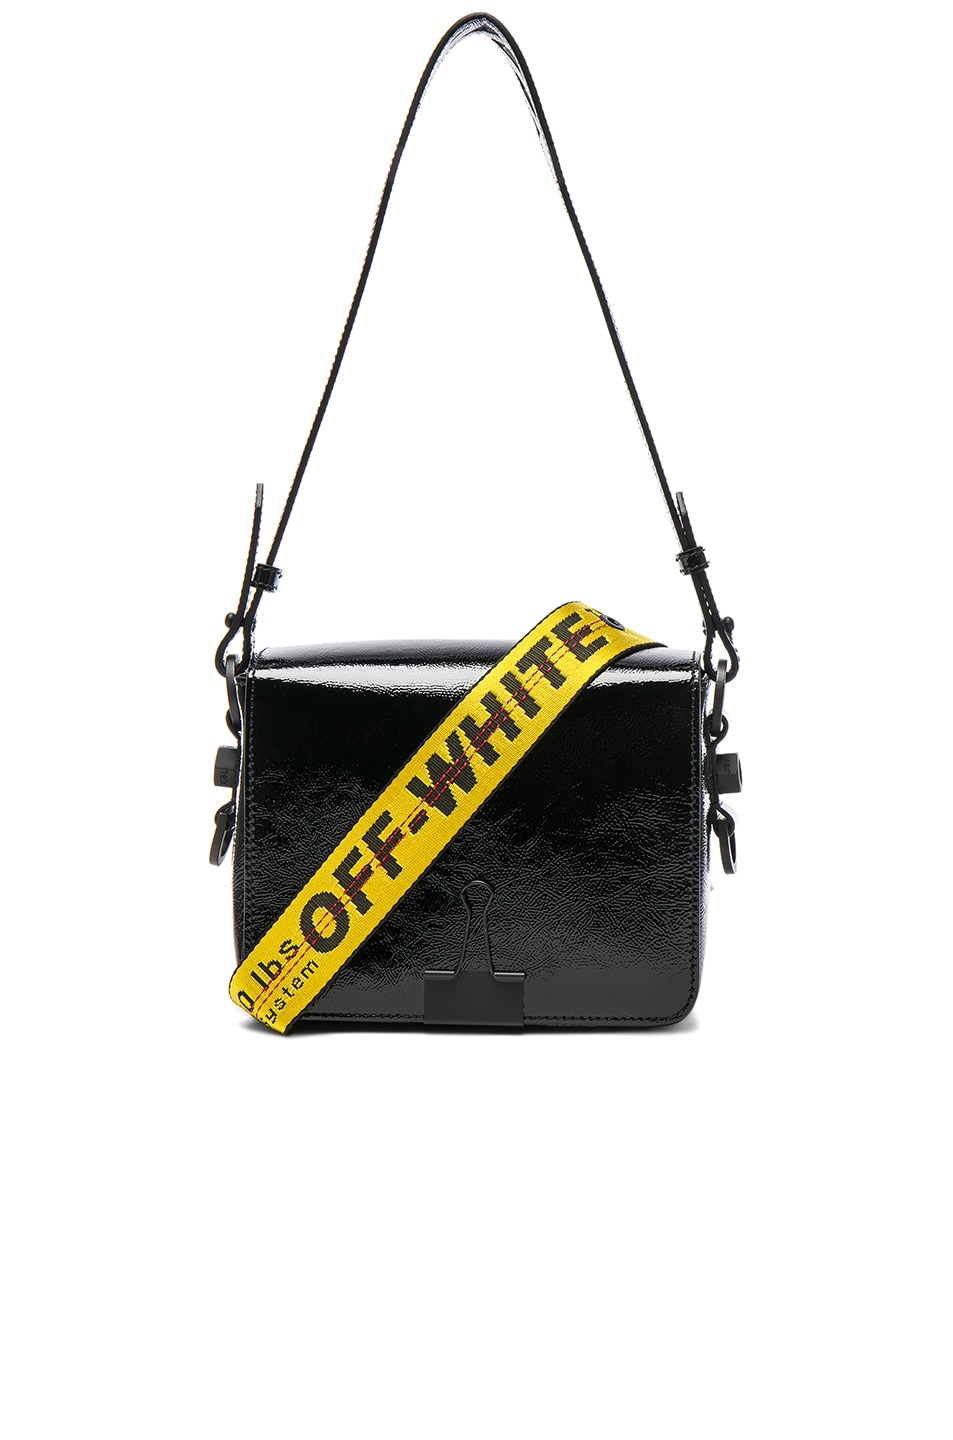 Off-white Smooth Leather Flap Crossbody Bag v5DH0